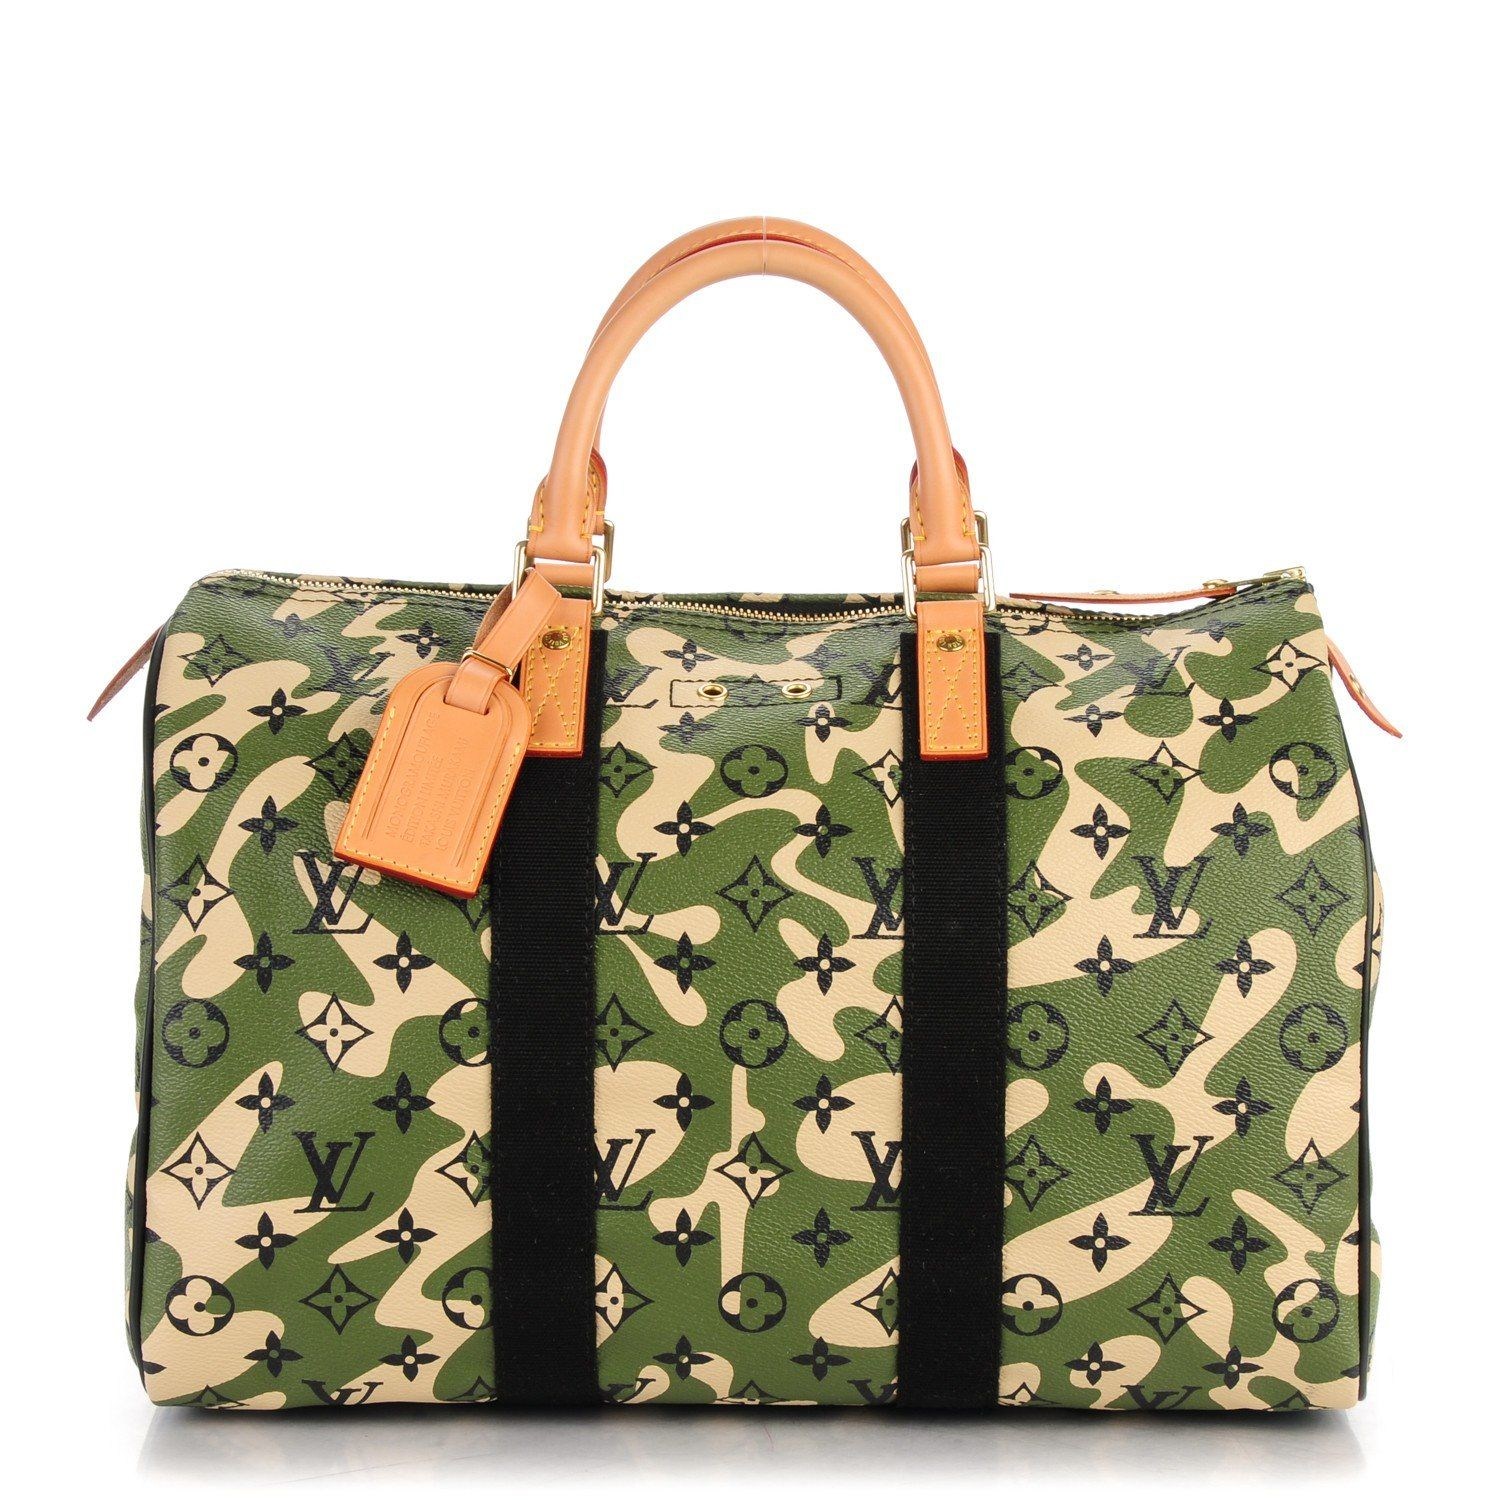 a9b9bed0e436 This is an authentic LOUIS VUITTON Monogramouflage Speedy 35. This stylish  limited edition tote is